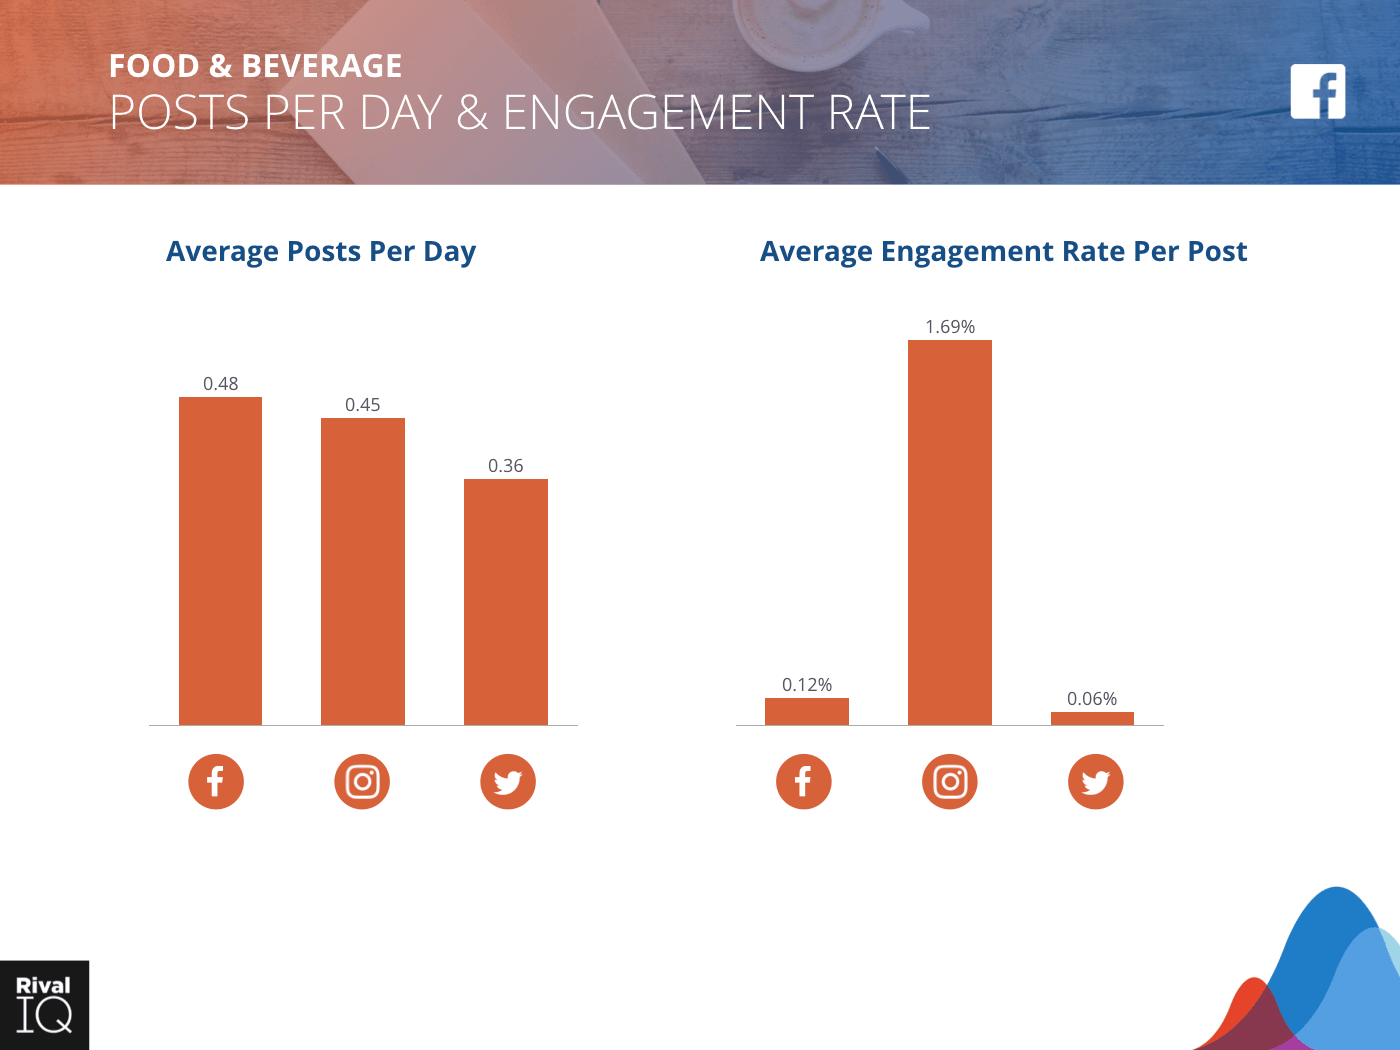 Food & Beverage Industry: Bar graph, average post per day and engagement rate, all channels.